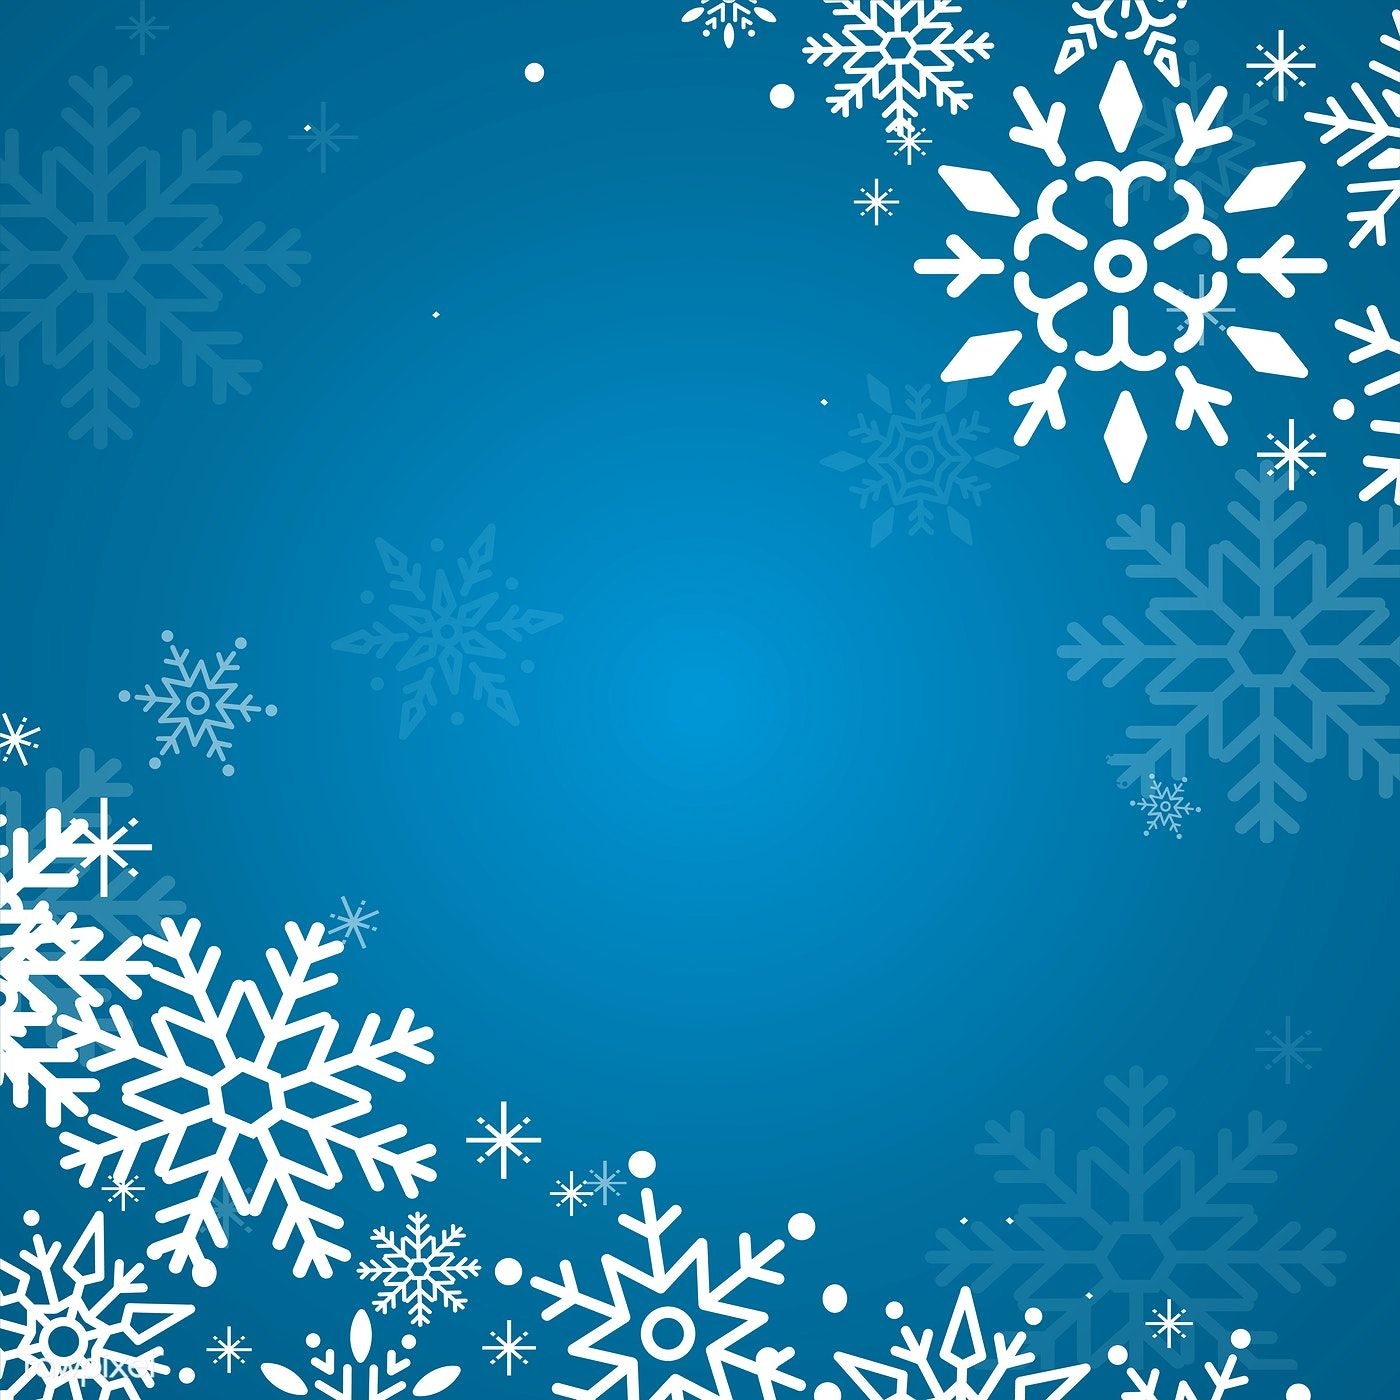 Blue Christmas Winter Holiday Background With Snowflake Vector Free Image By Rawpixel Com Blue Christmas Holiday Background Winter Holidays